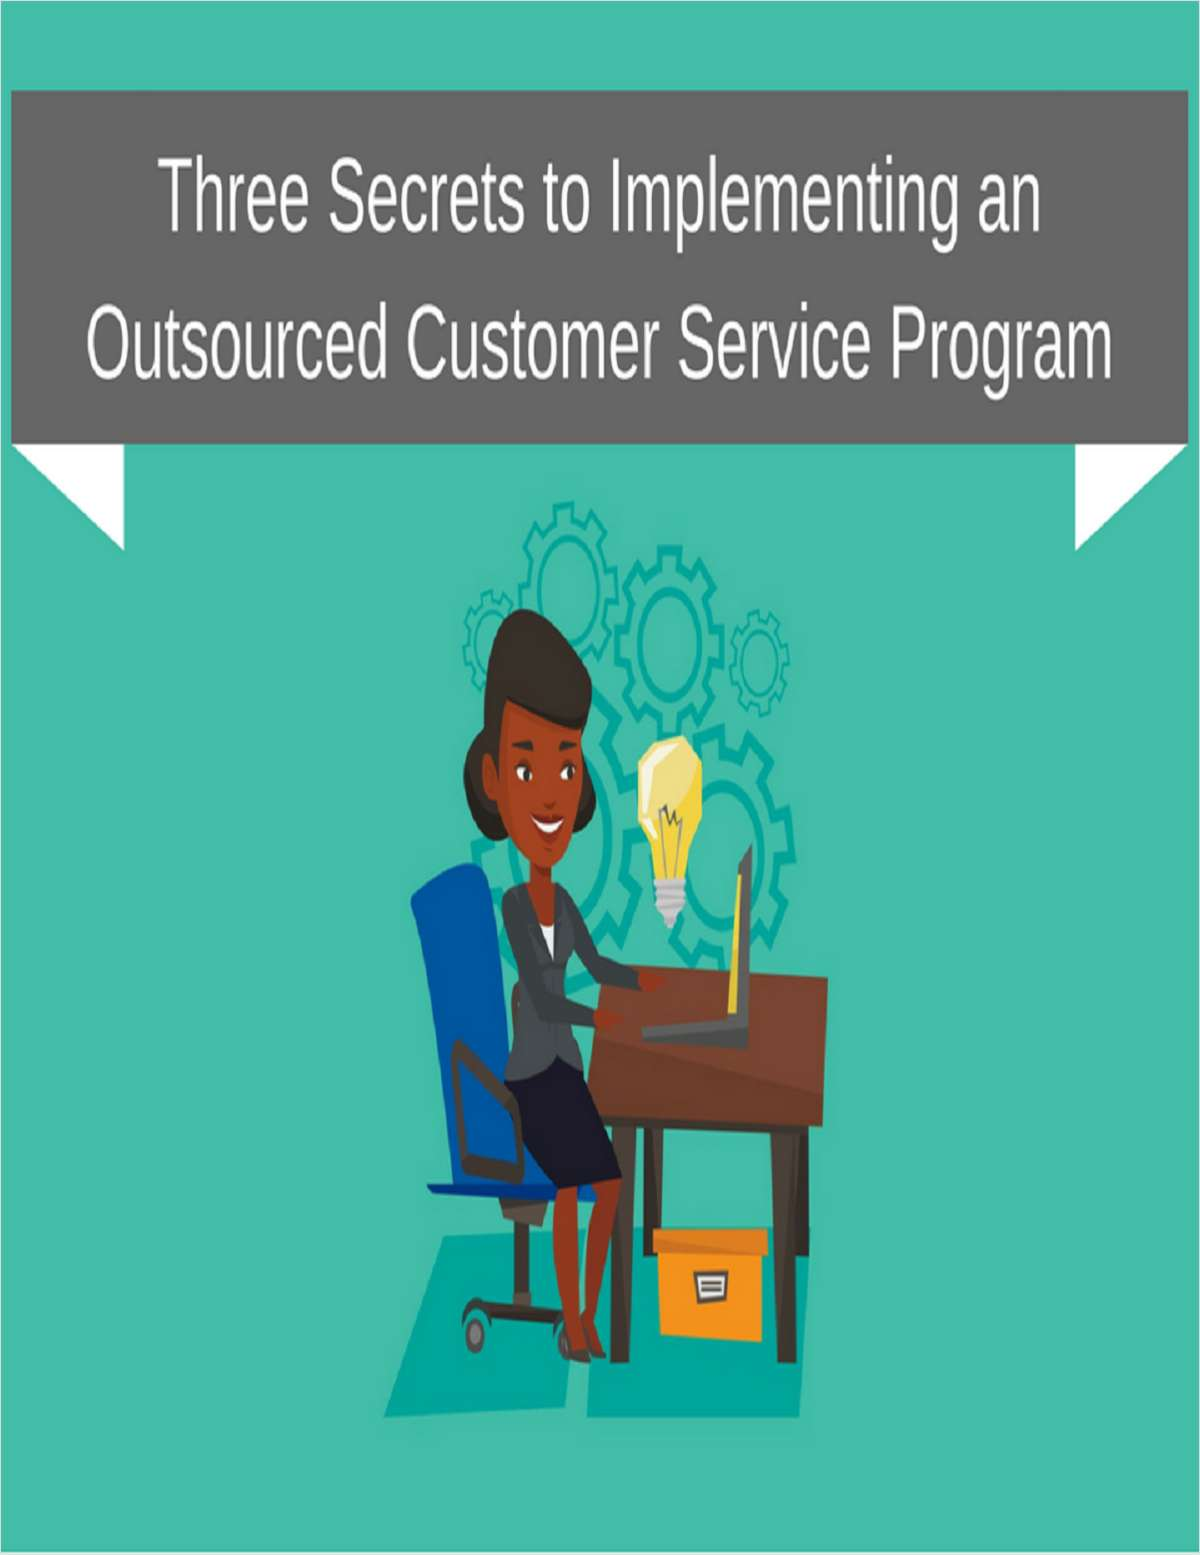 Three Secrets to Implementing an Outsourced Customer Service Program